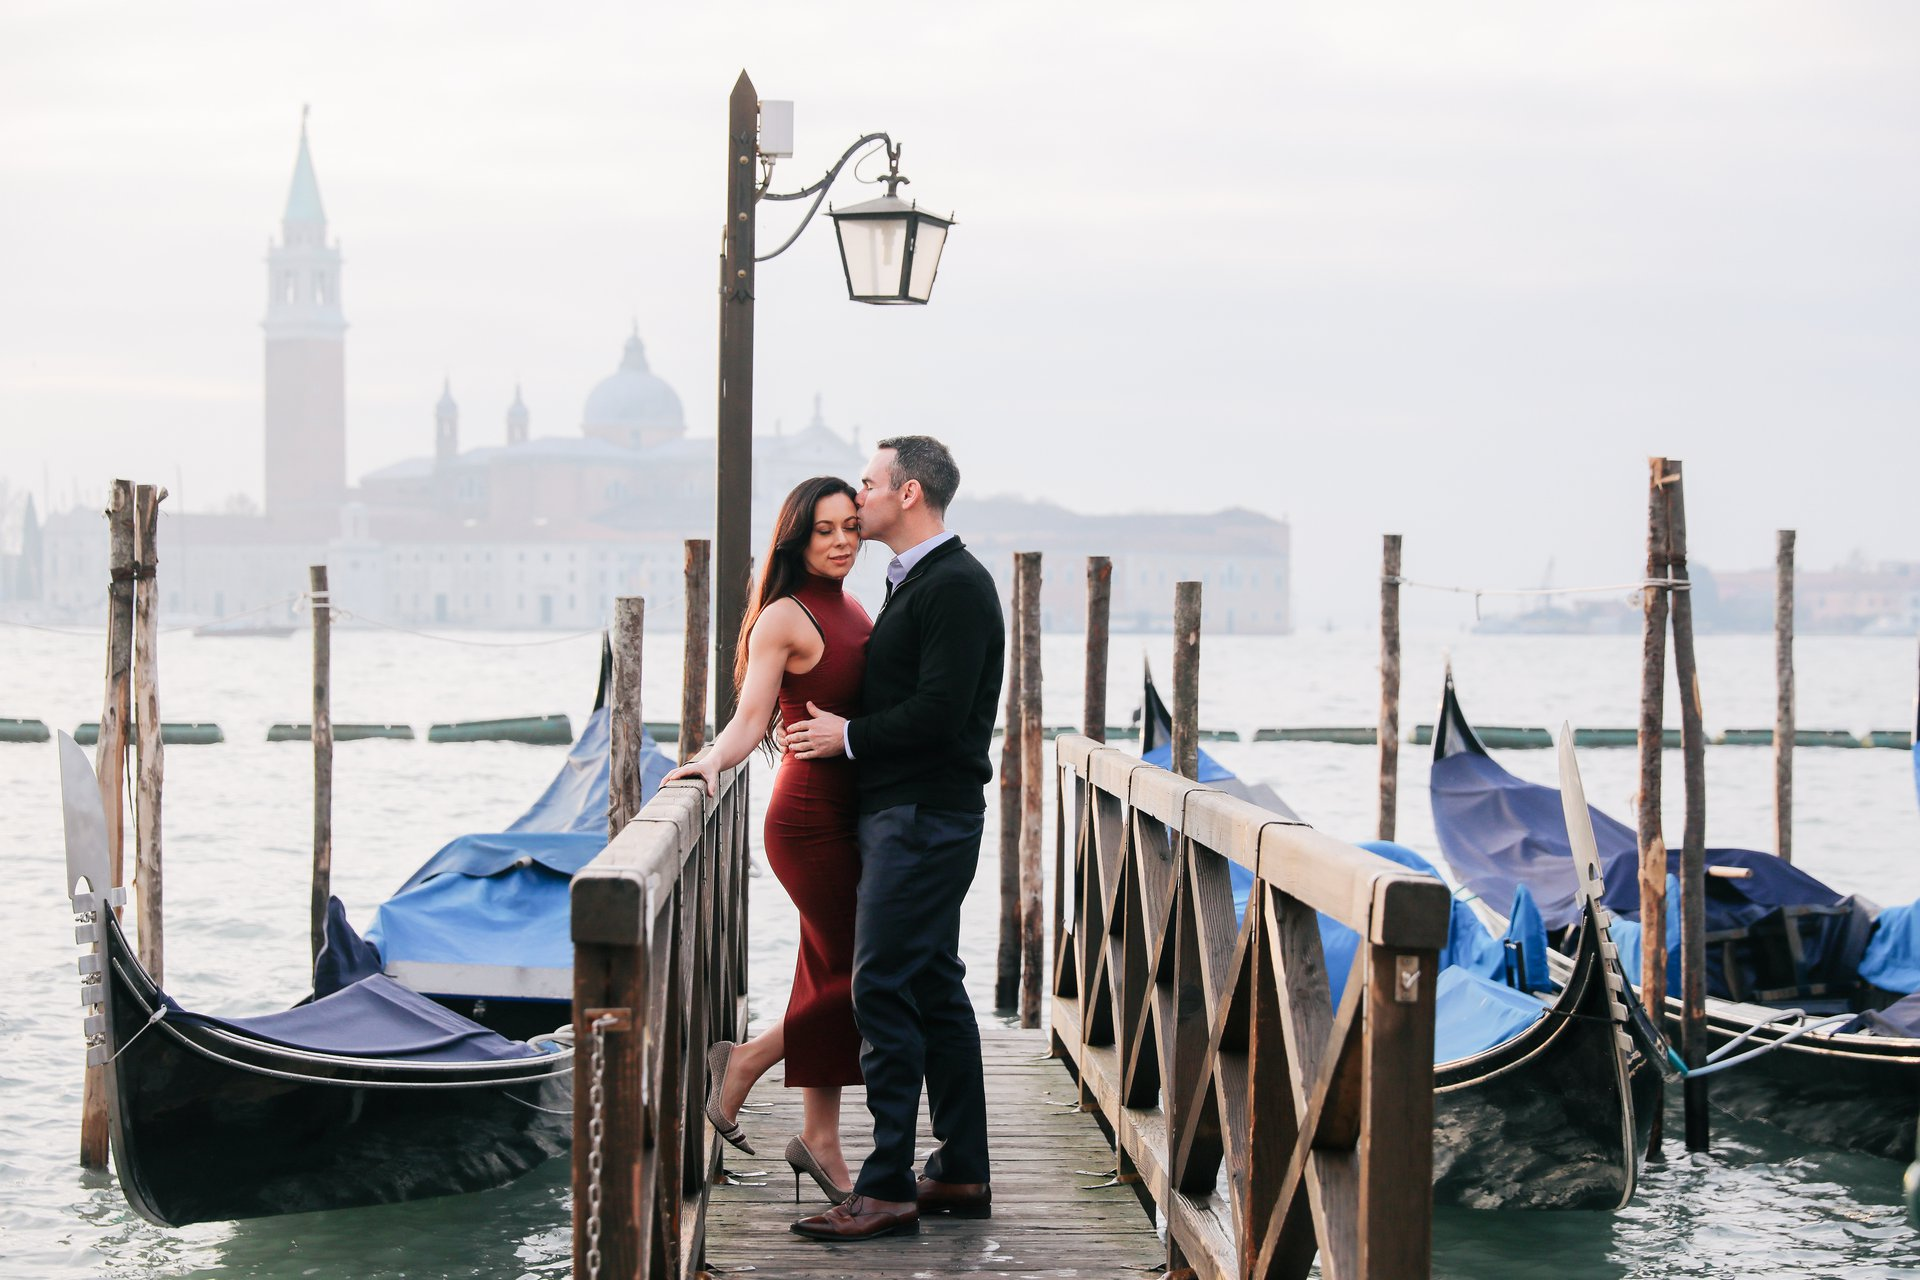 Flytographer Travel Story - Lost in Venice